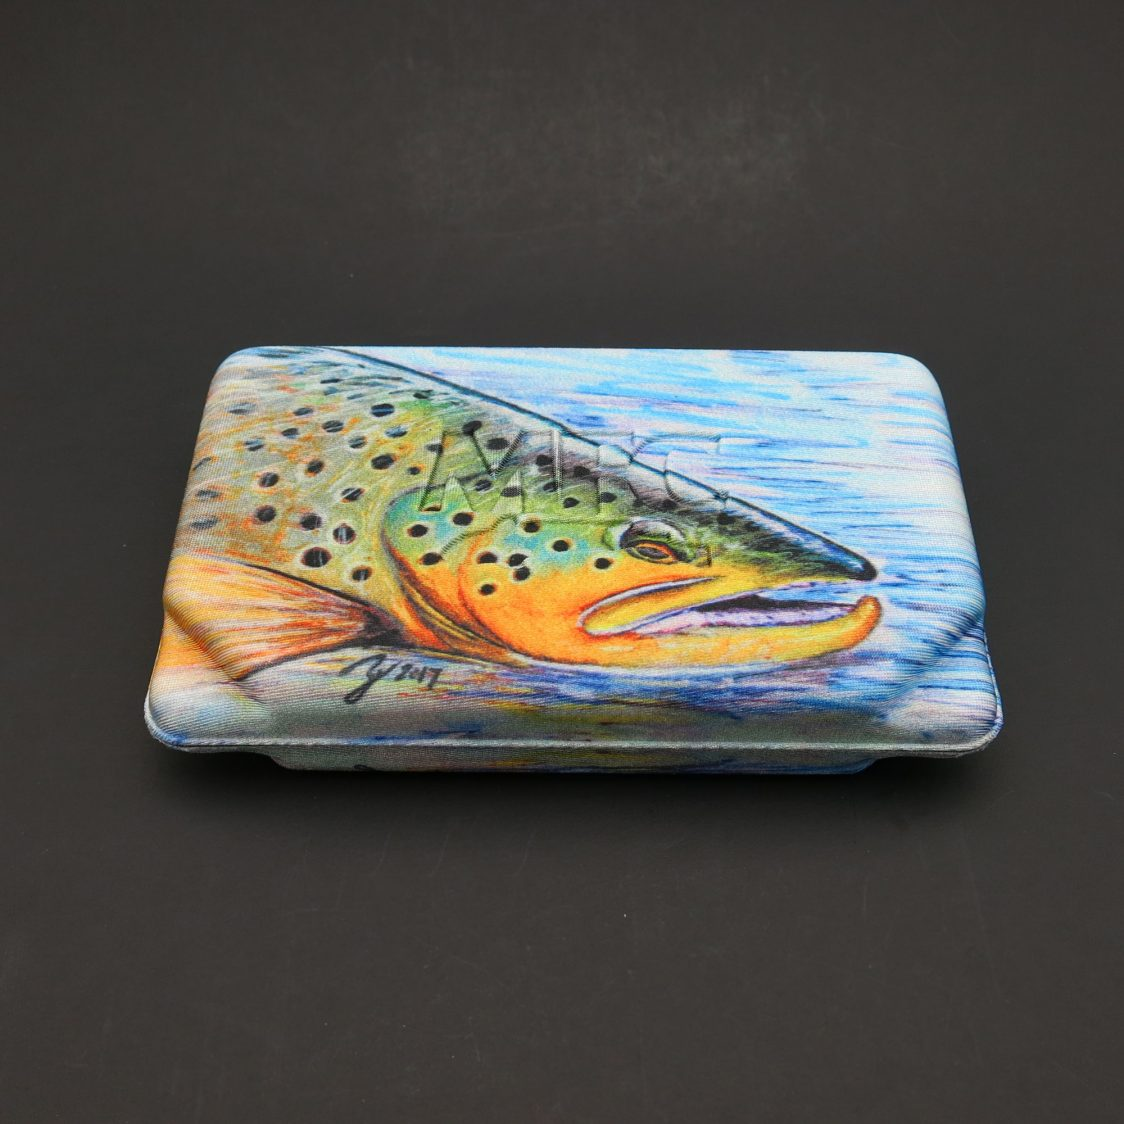 MFC Flyweight Fly Box - Hallocks Brown Trout